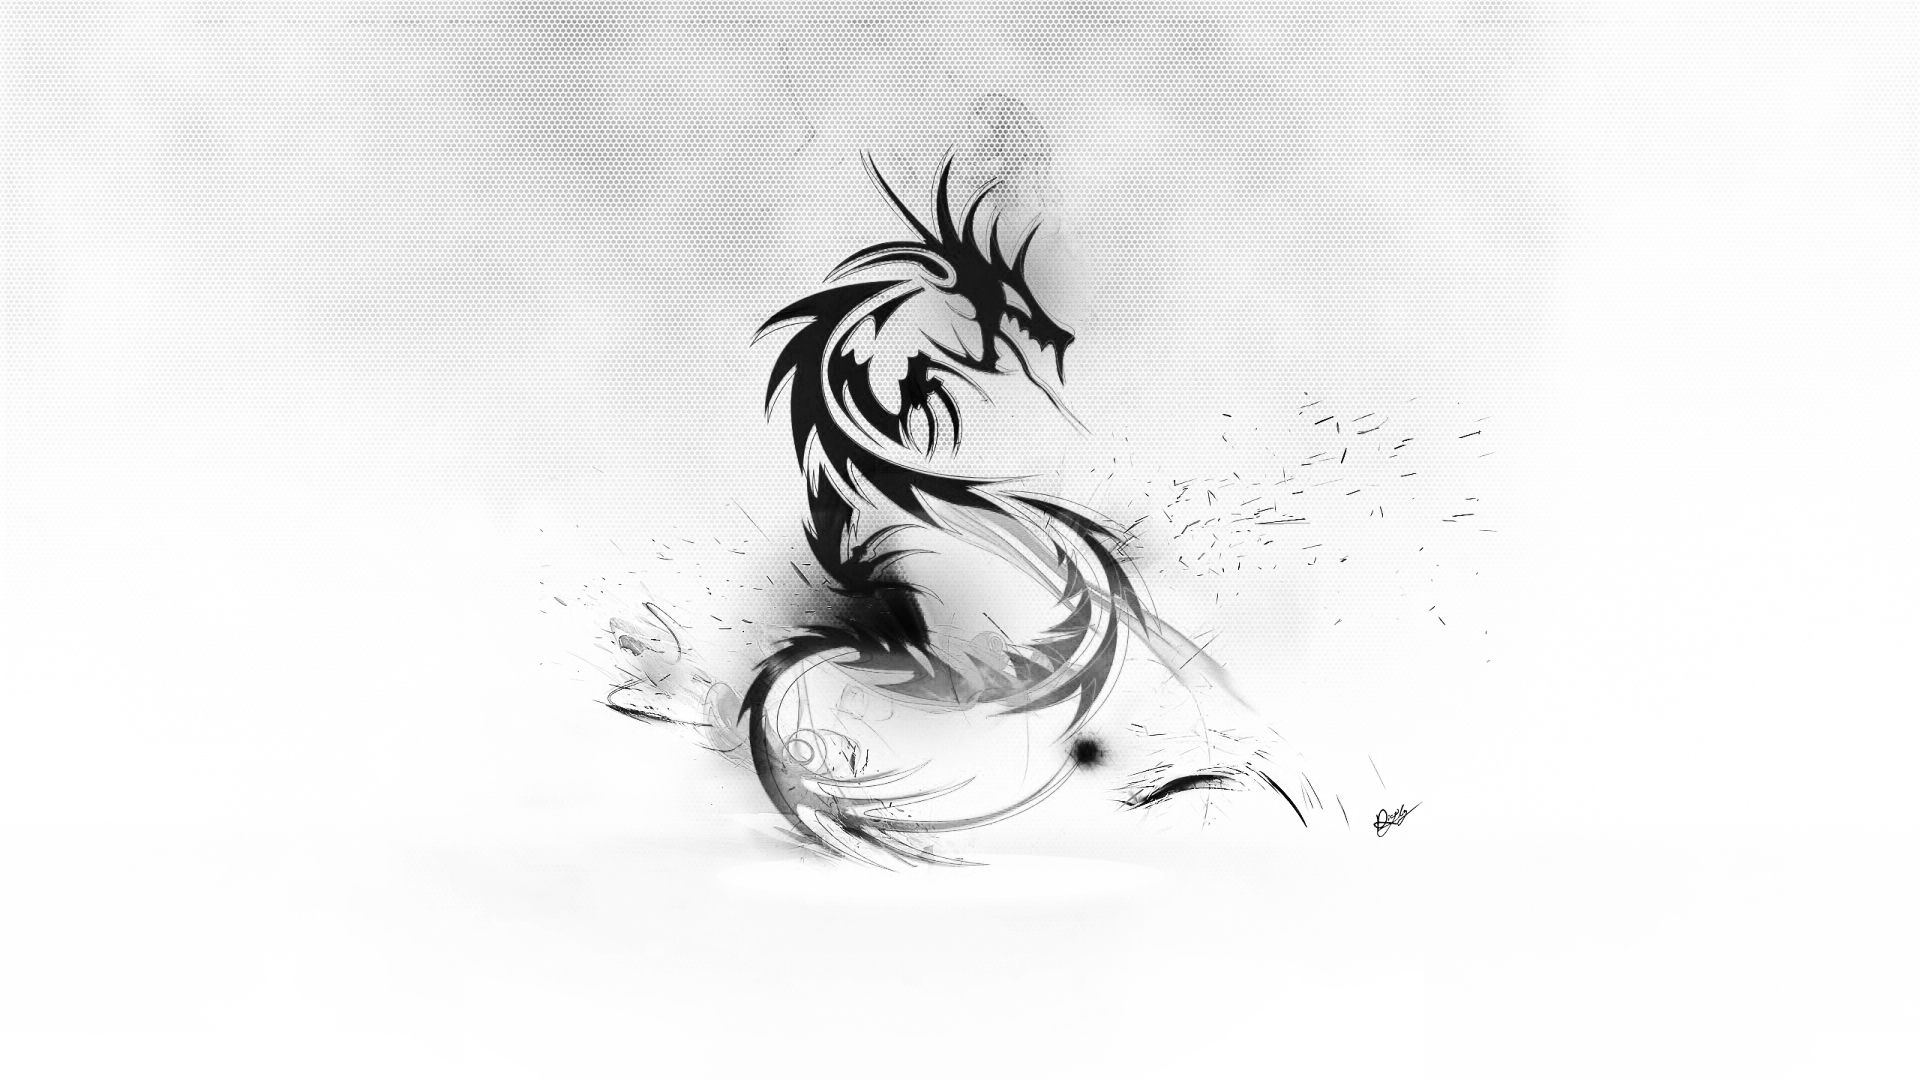 Black And White Dragon Wallpapers Top Free Black And White Dragon Backgrounds Wallpaperaccess